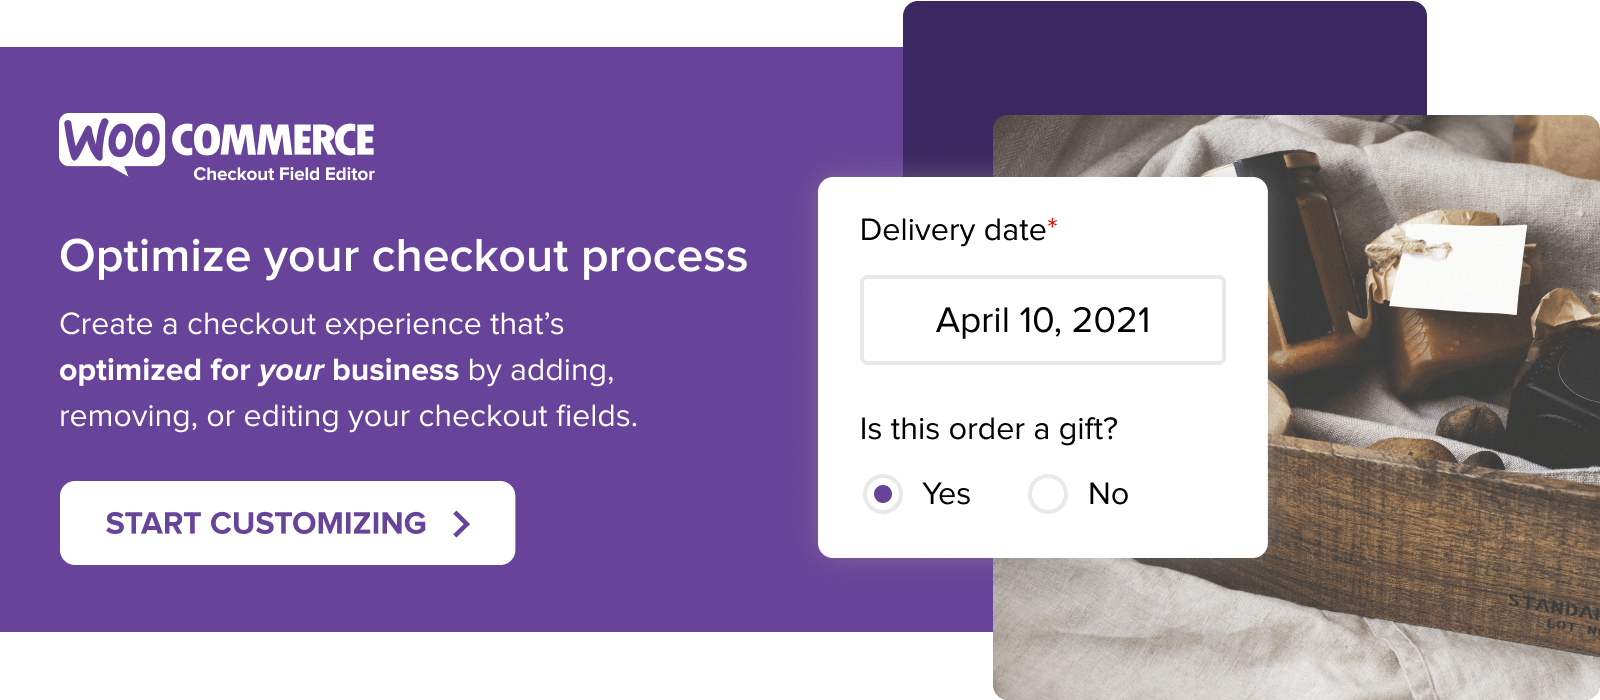 Optimize your checkout process with WooCommerce Checkout Field Editor